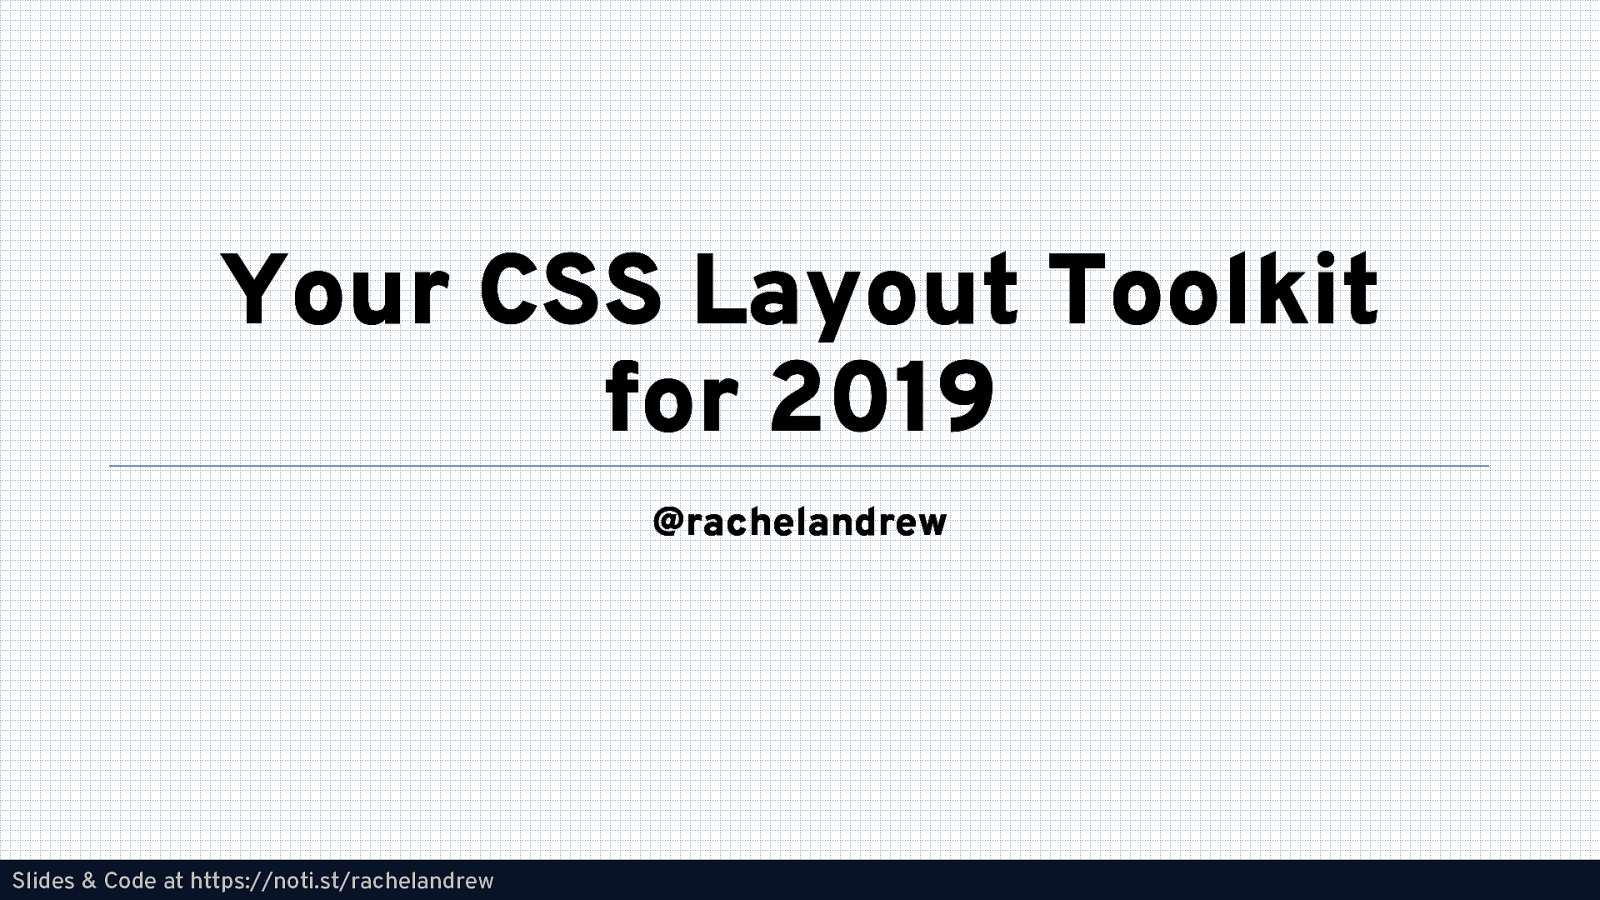 Your CSS Layout Toolkit for 2019